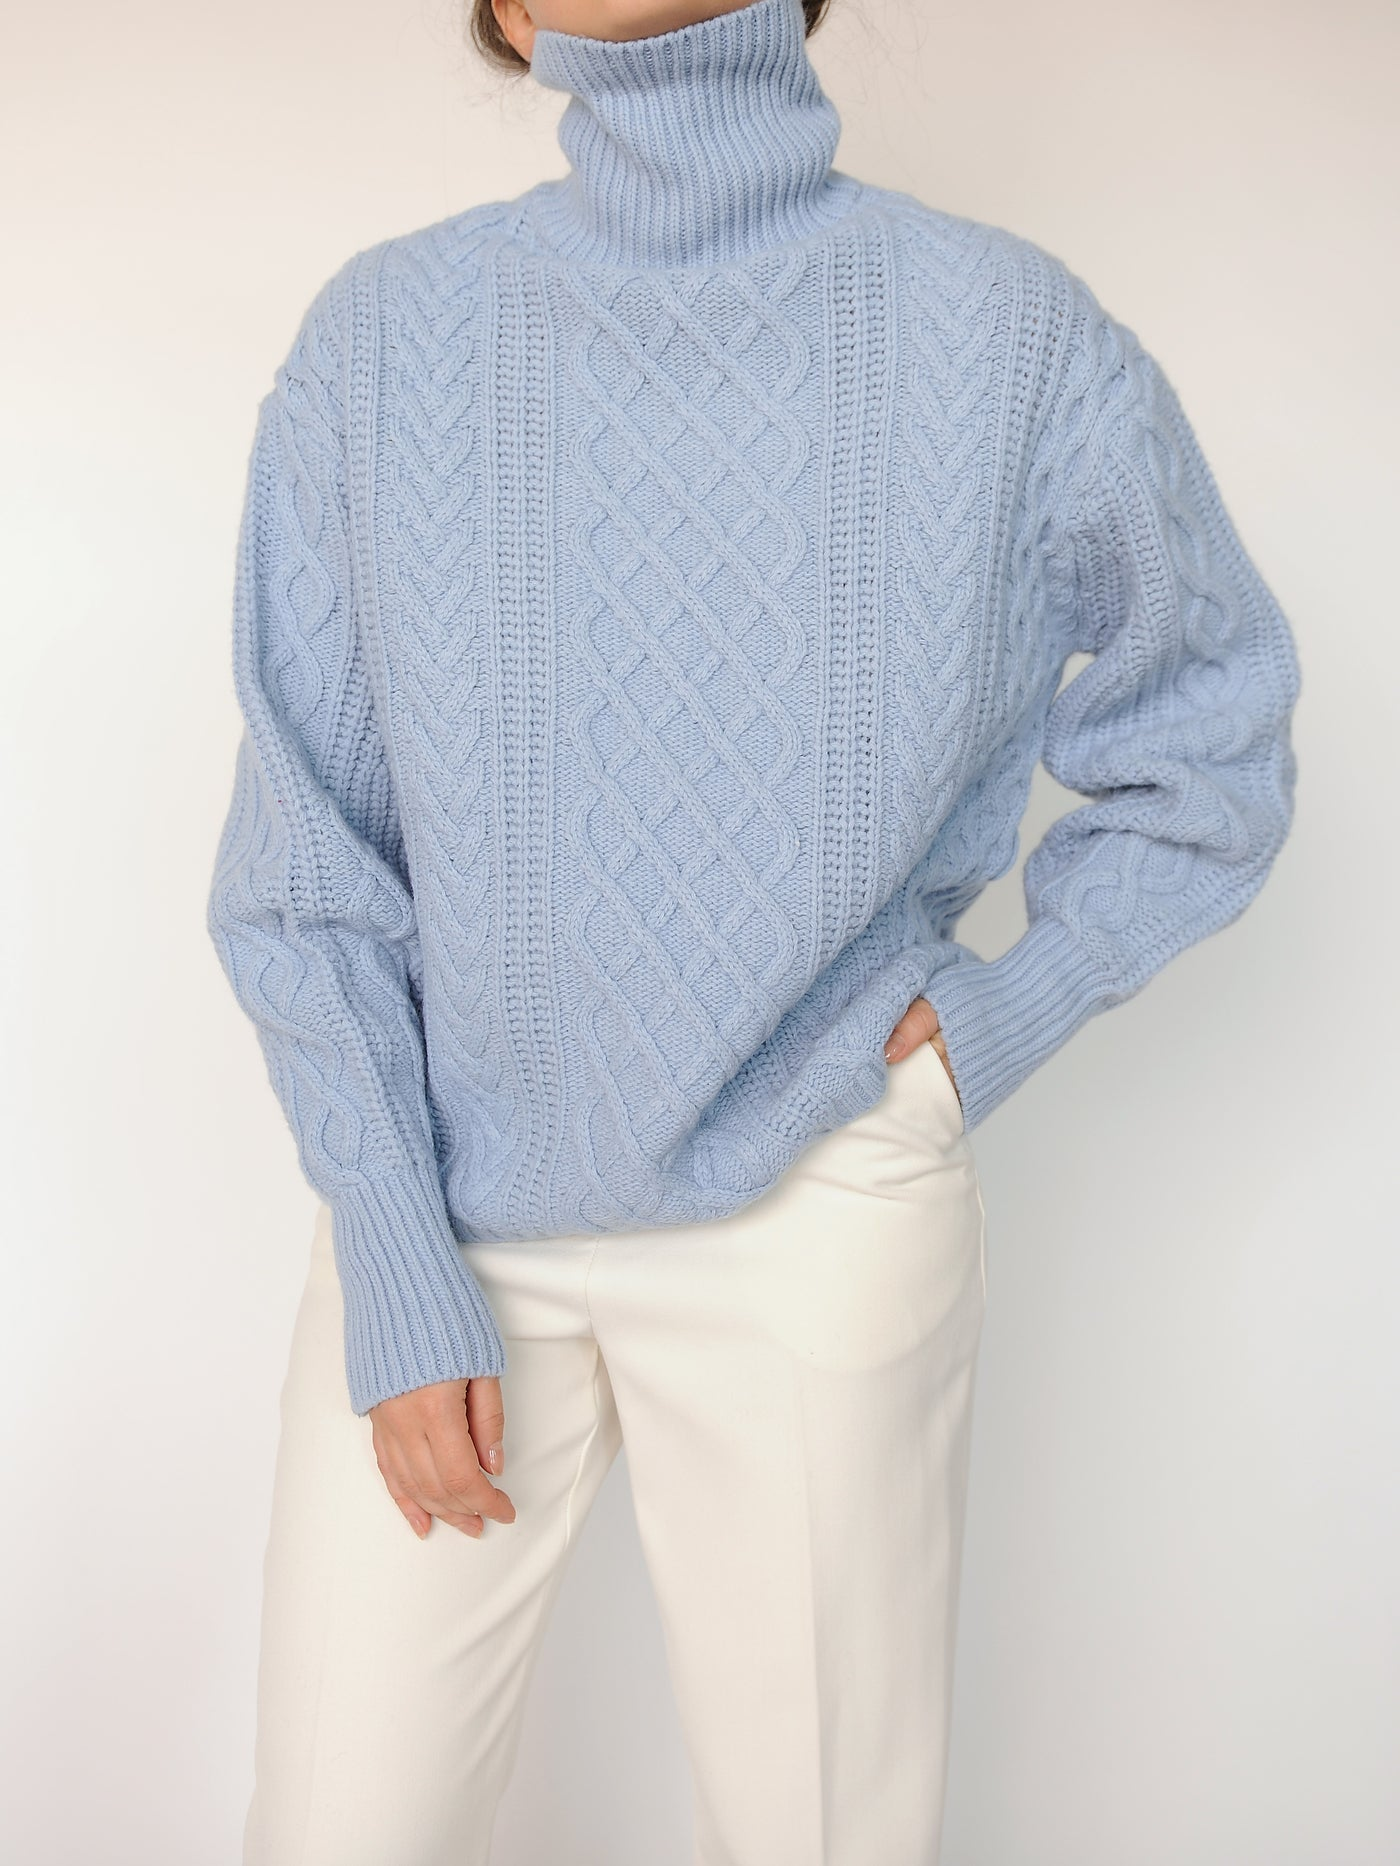 Sky Blue Turtleneck Sweater - Marble Hive